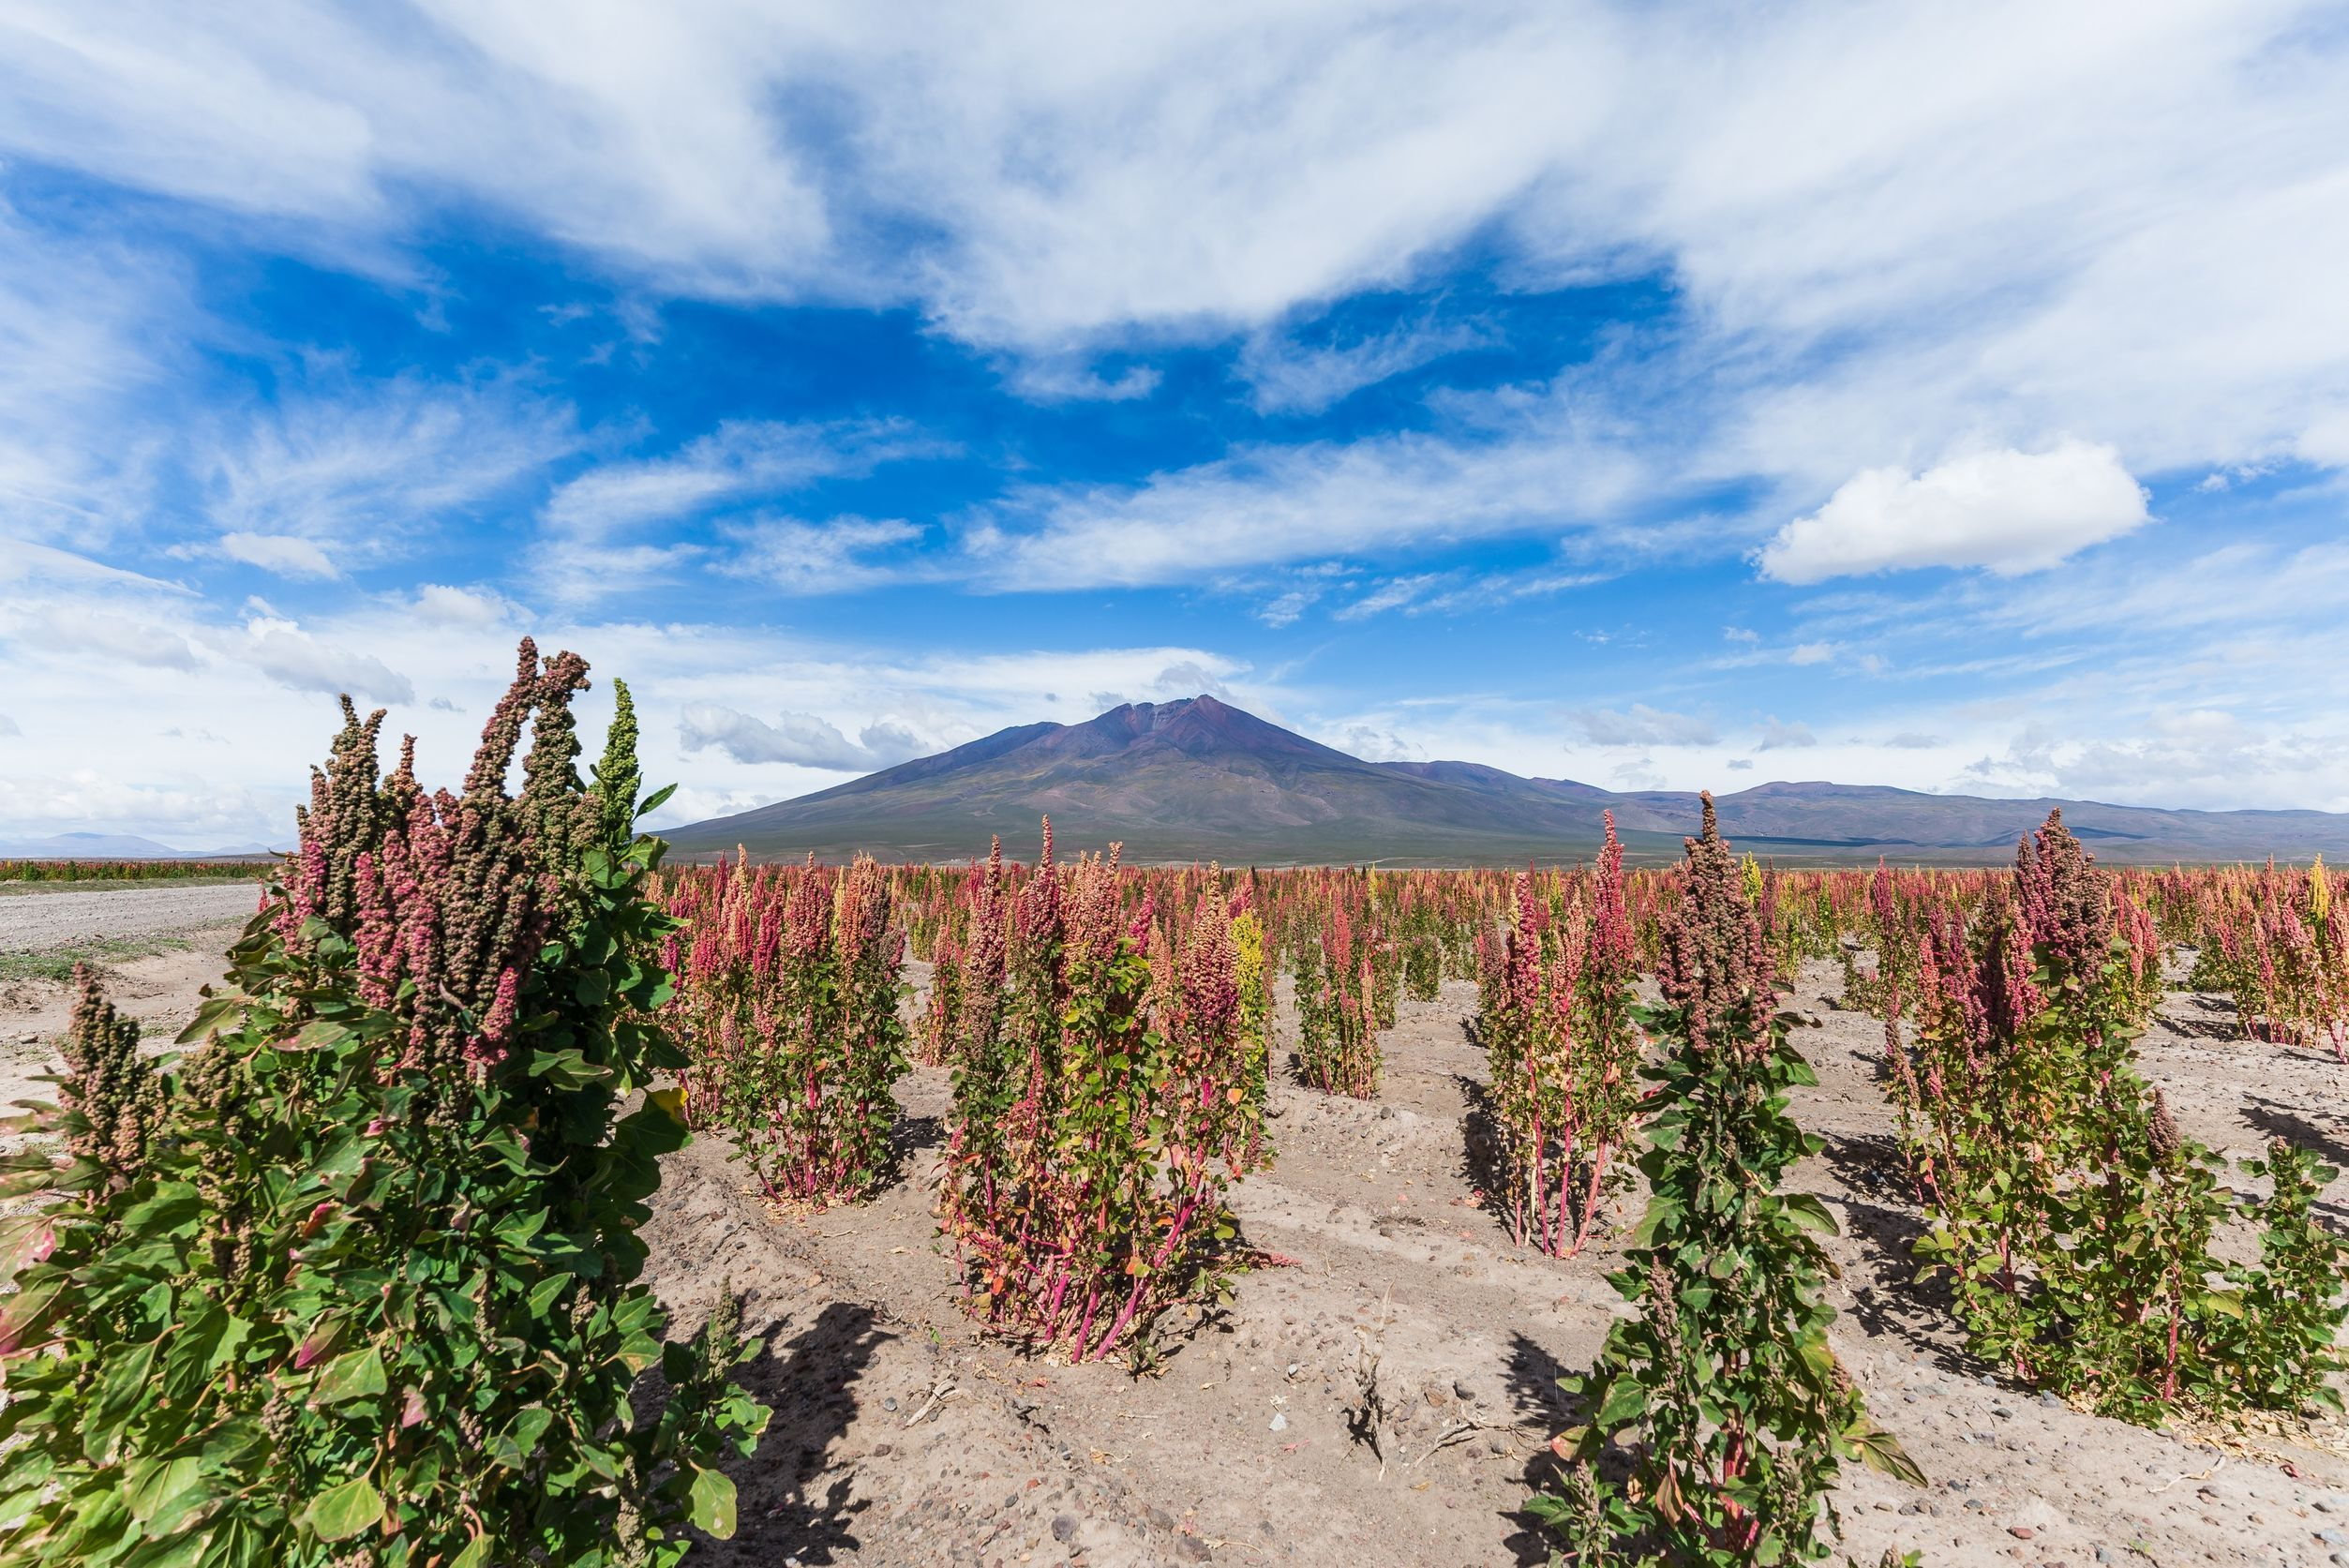 quinoa fields in the bolivian altiplano